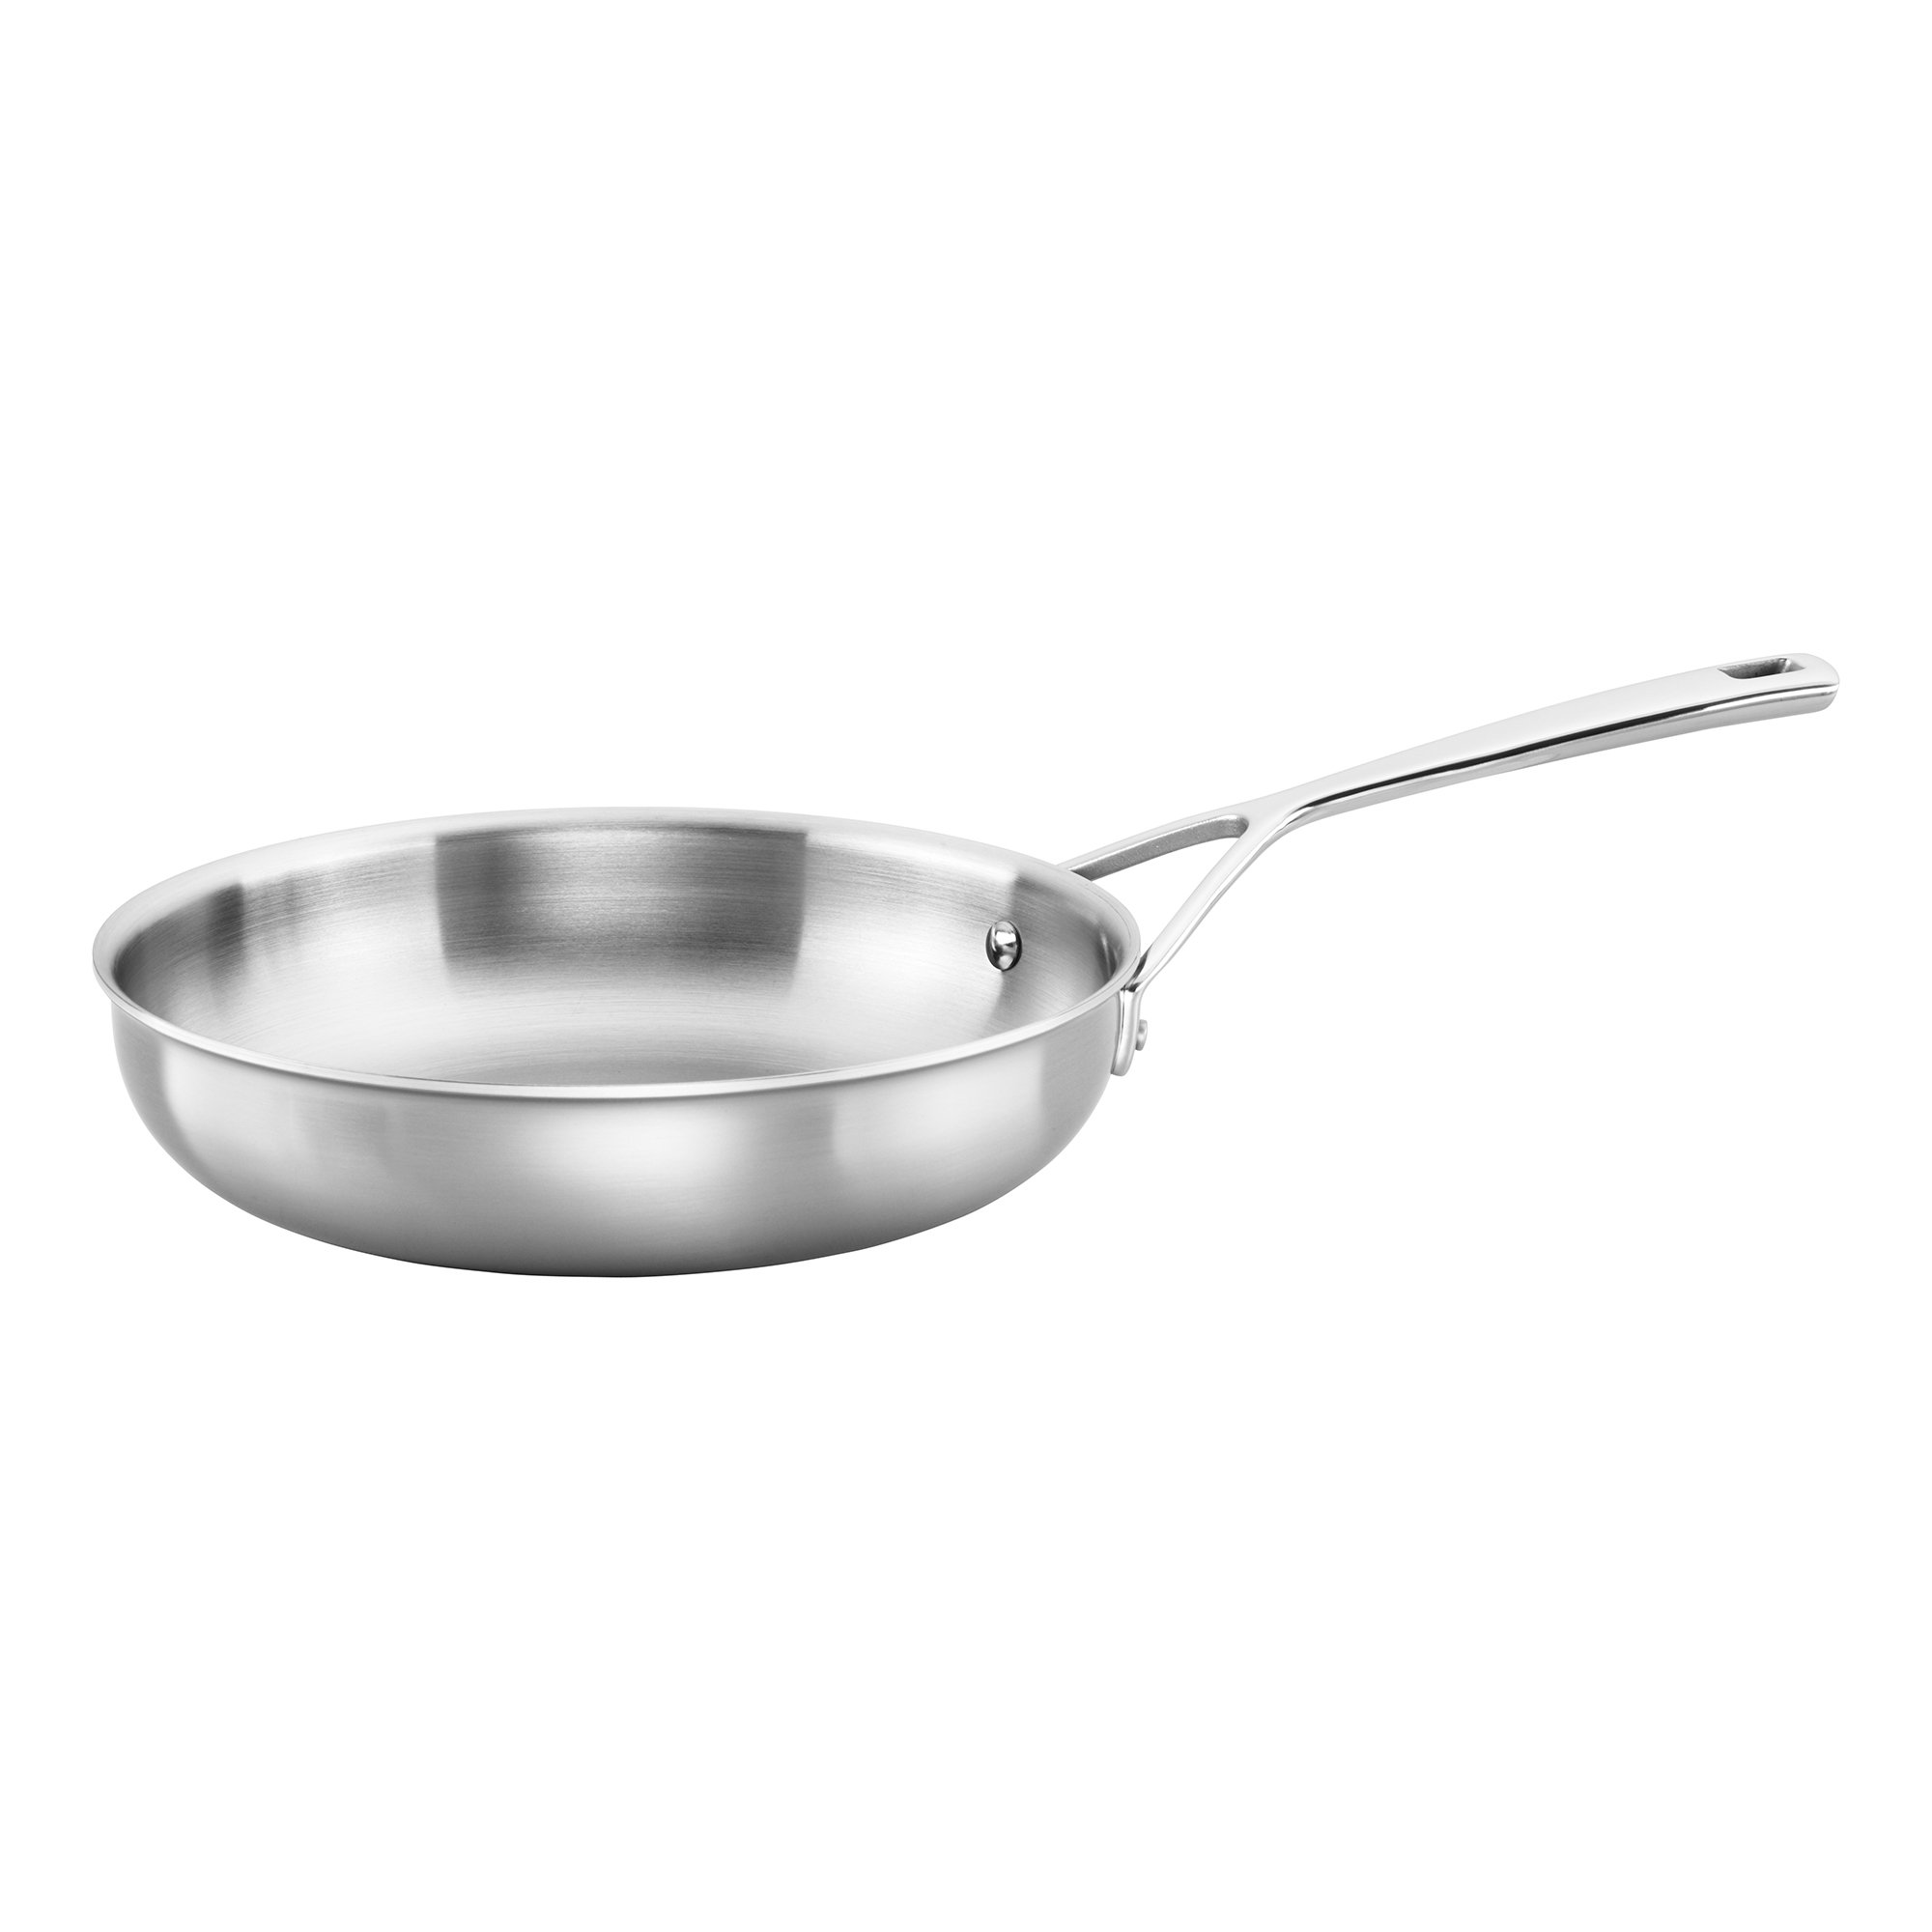 ZWILLING J.A. Henckels 66088-240 Fry Pan, 9.5'', Stainless Steel